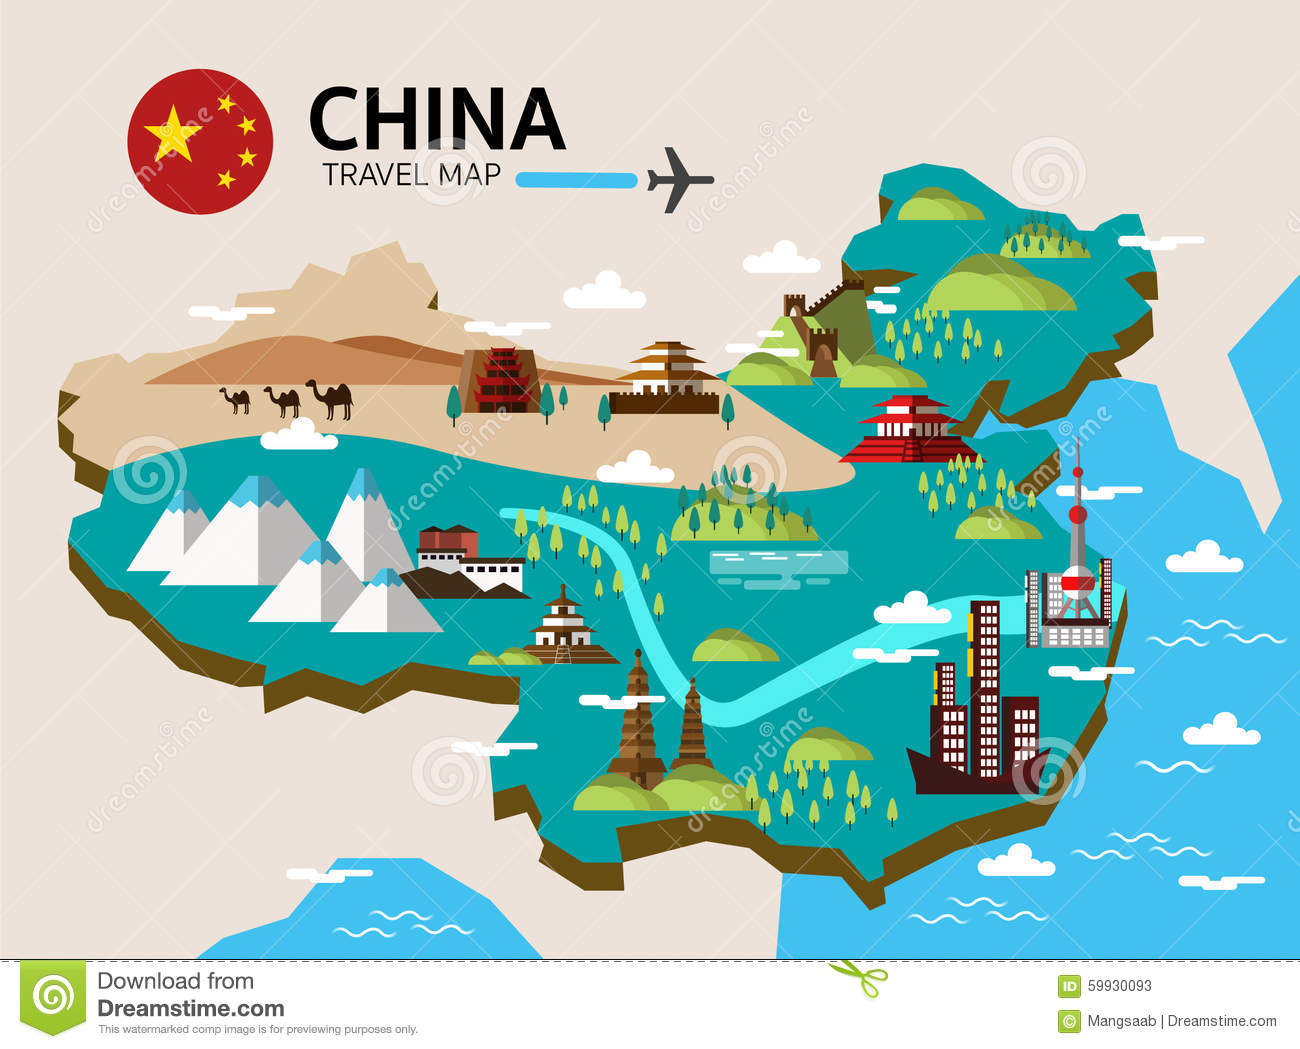 China Landmark And Travel Map. Stock Vector - Illustration ... on map art, map background, map making, map great britain, map of california and mexico, map app, map clipart, product illustration, map of victoria, map paper, map travel, map books, map of the south sewanee university, digital illustration, map cartoon, map of belfast and surrounding areas, map of spanish speaking world, map key, technical illustration, architectural illustration, medical illustration, map design, map of louisiana and mississippi, map infographic, map print,